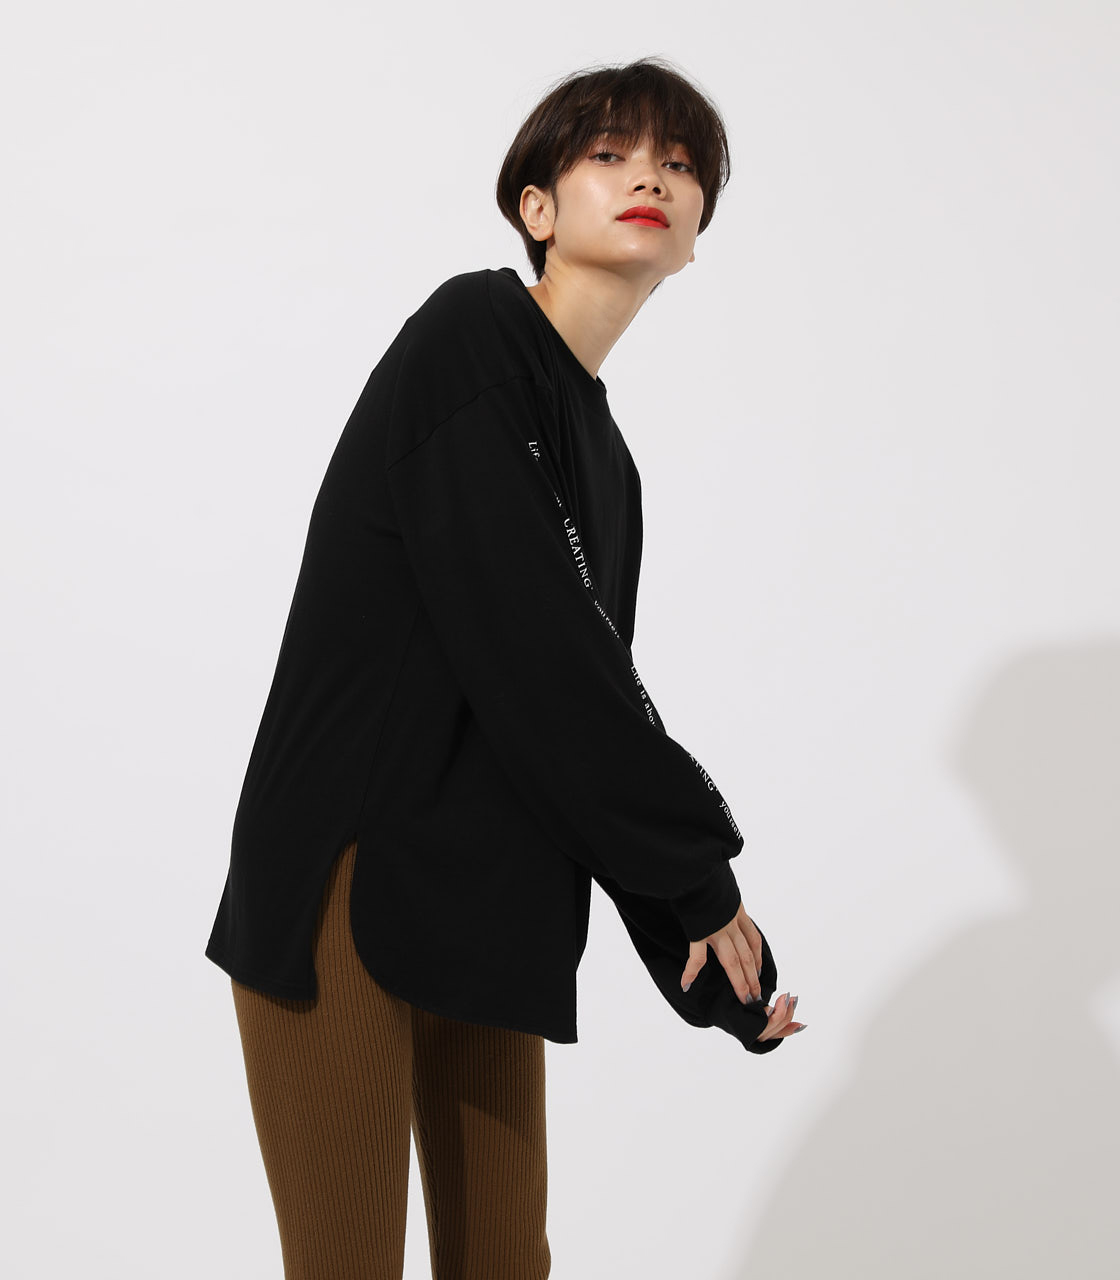 LONG SLEEVE LOOSE TOPS/ロングスリーブルーズトップス 詳細画像 BLK 2